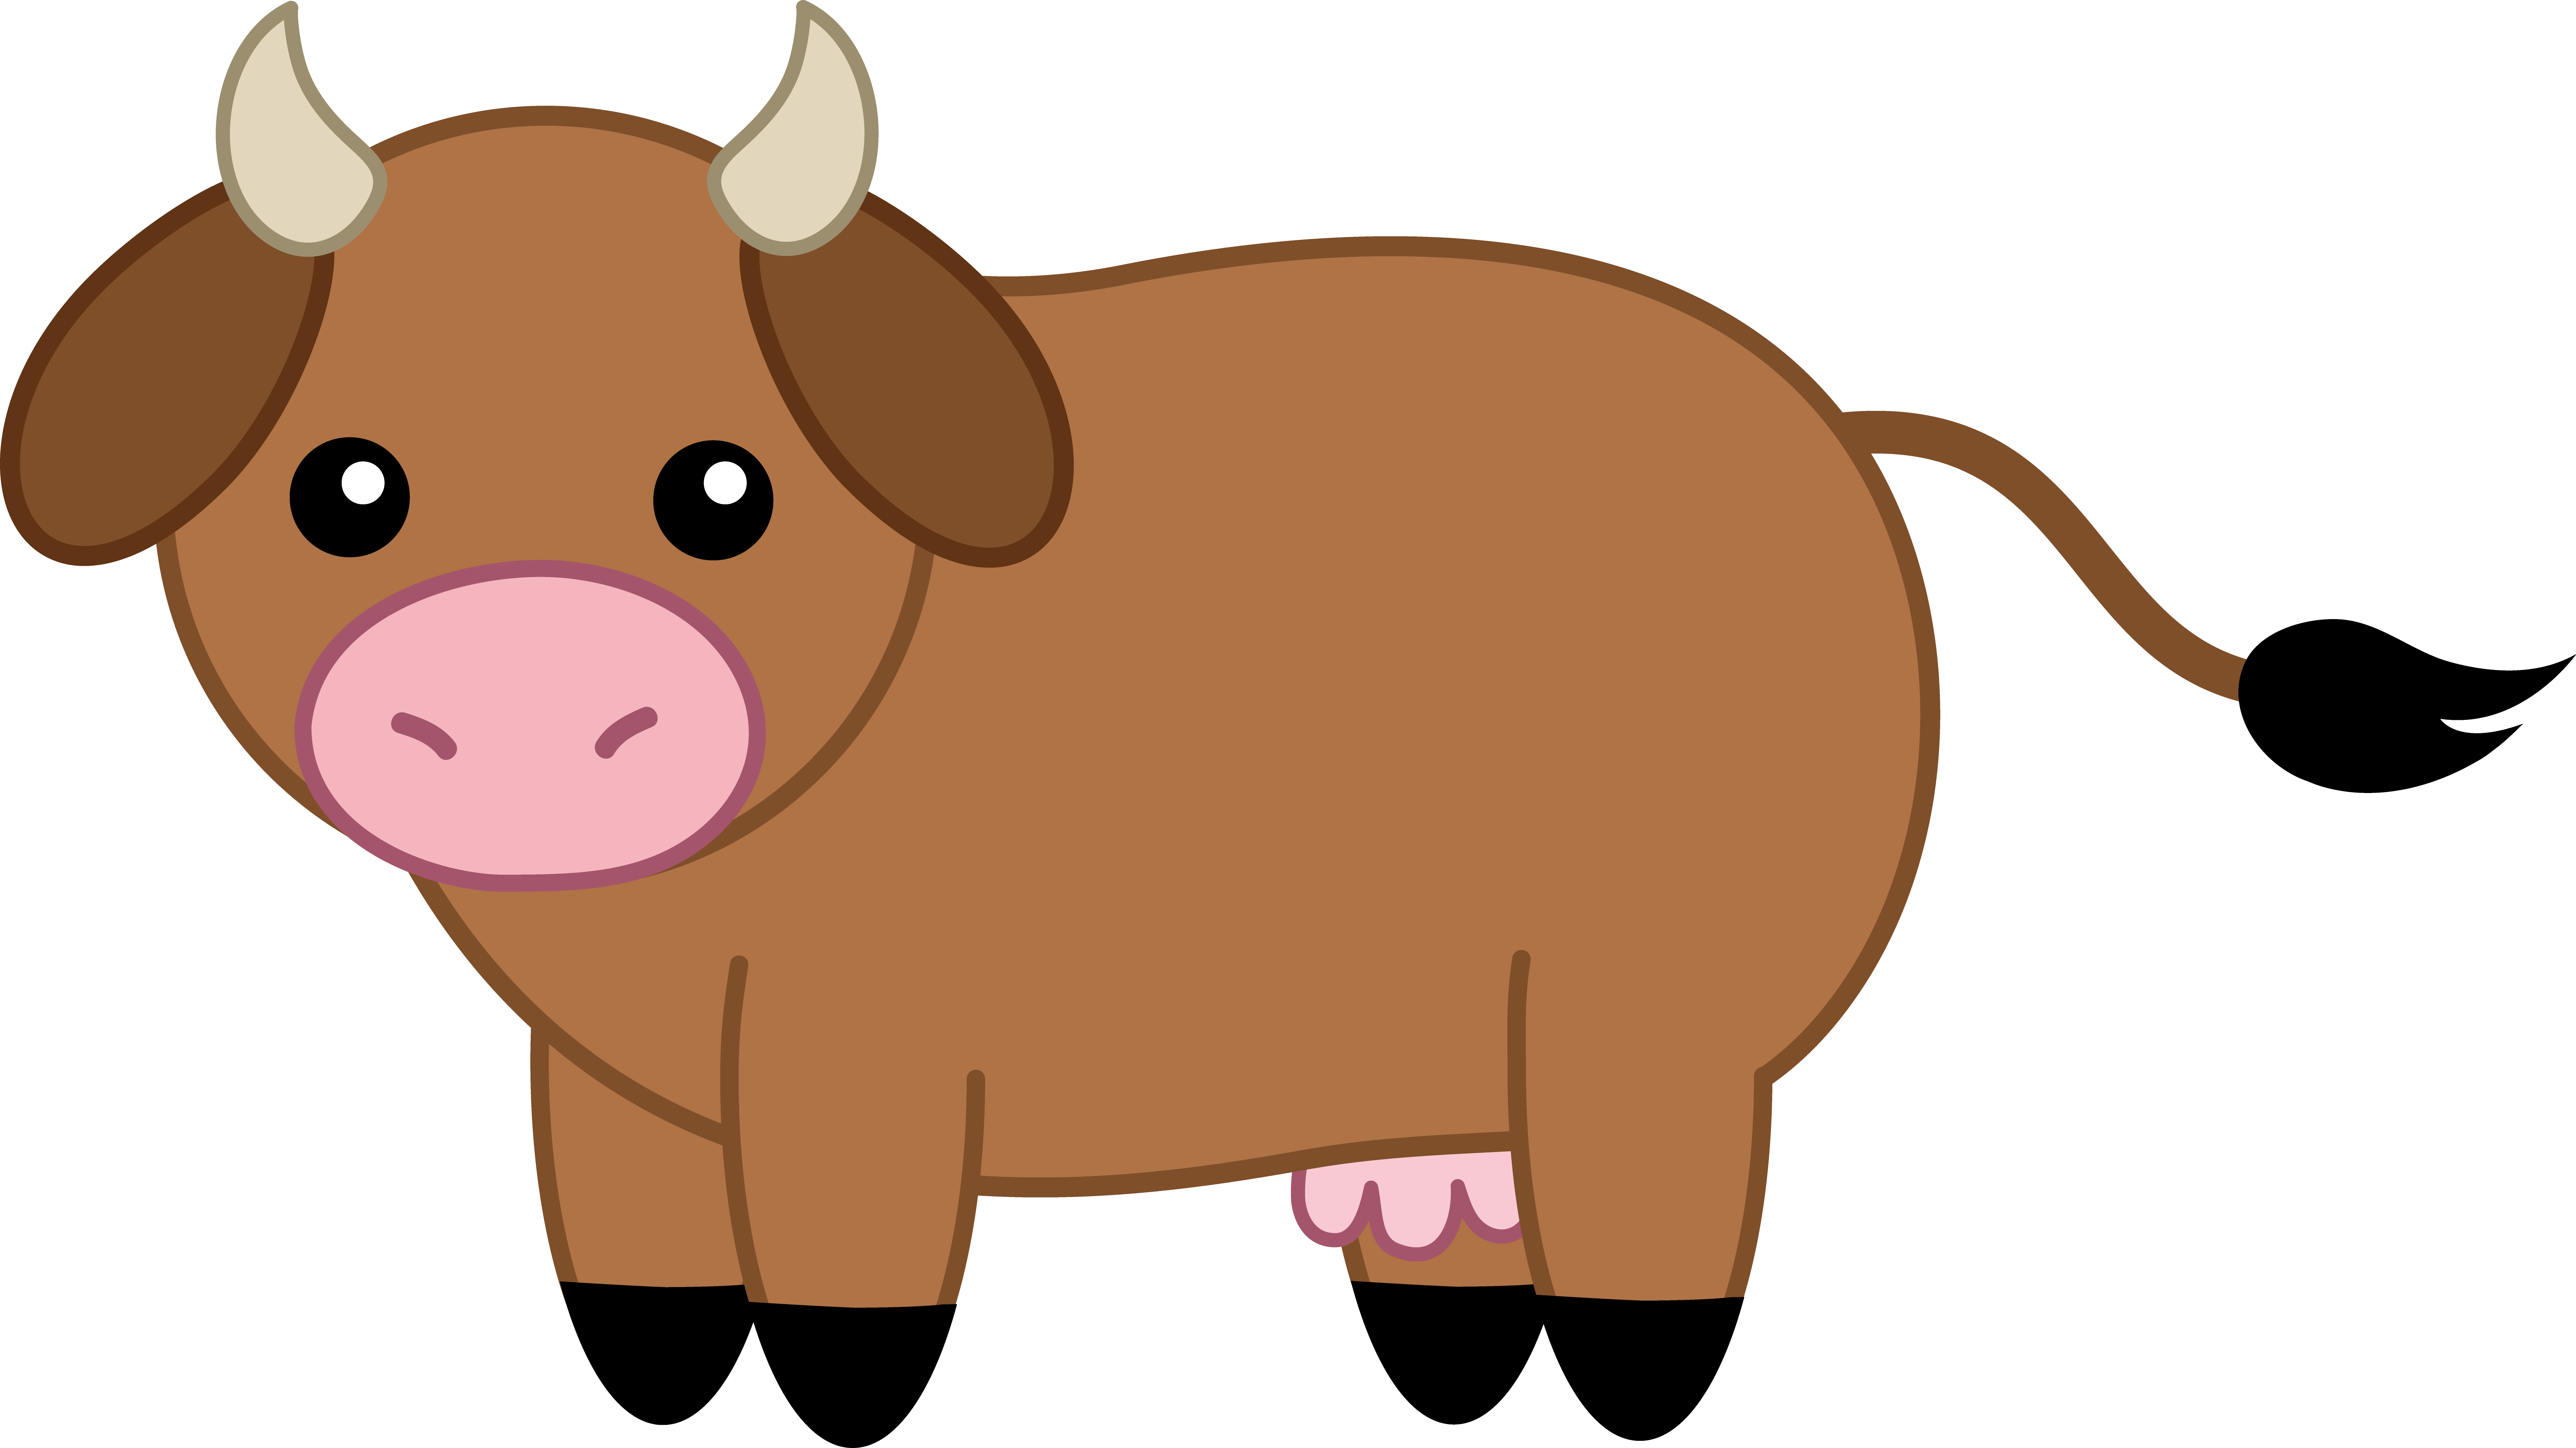 Cow clipart profile. Why you need to